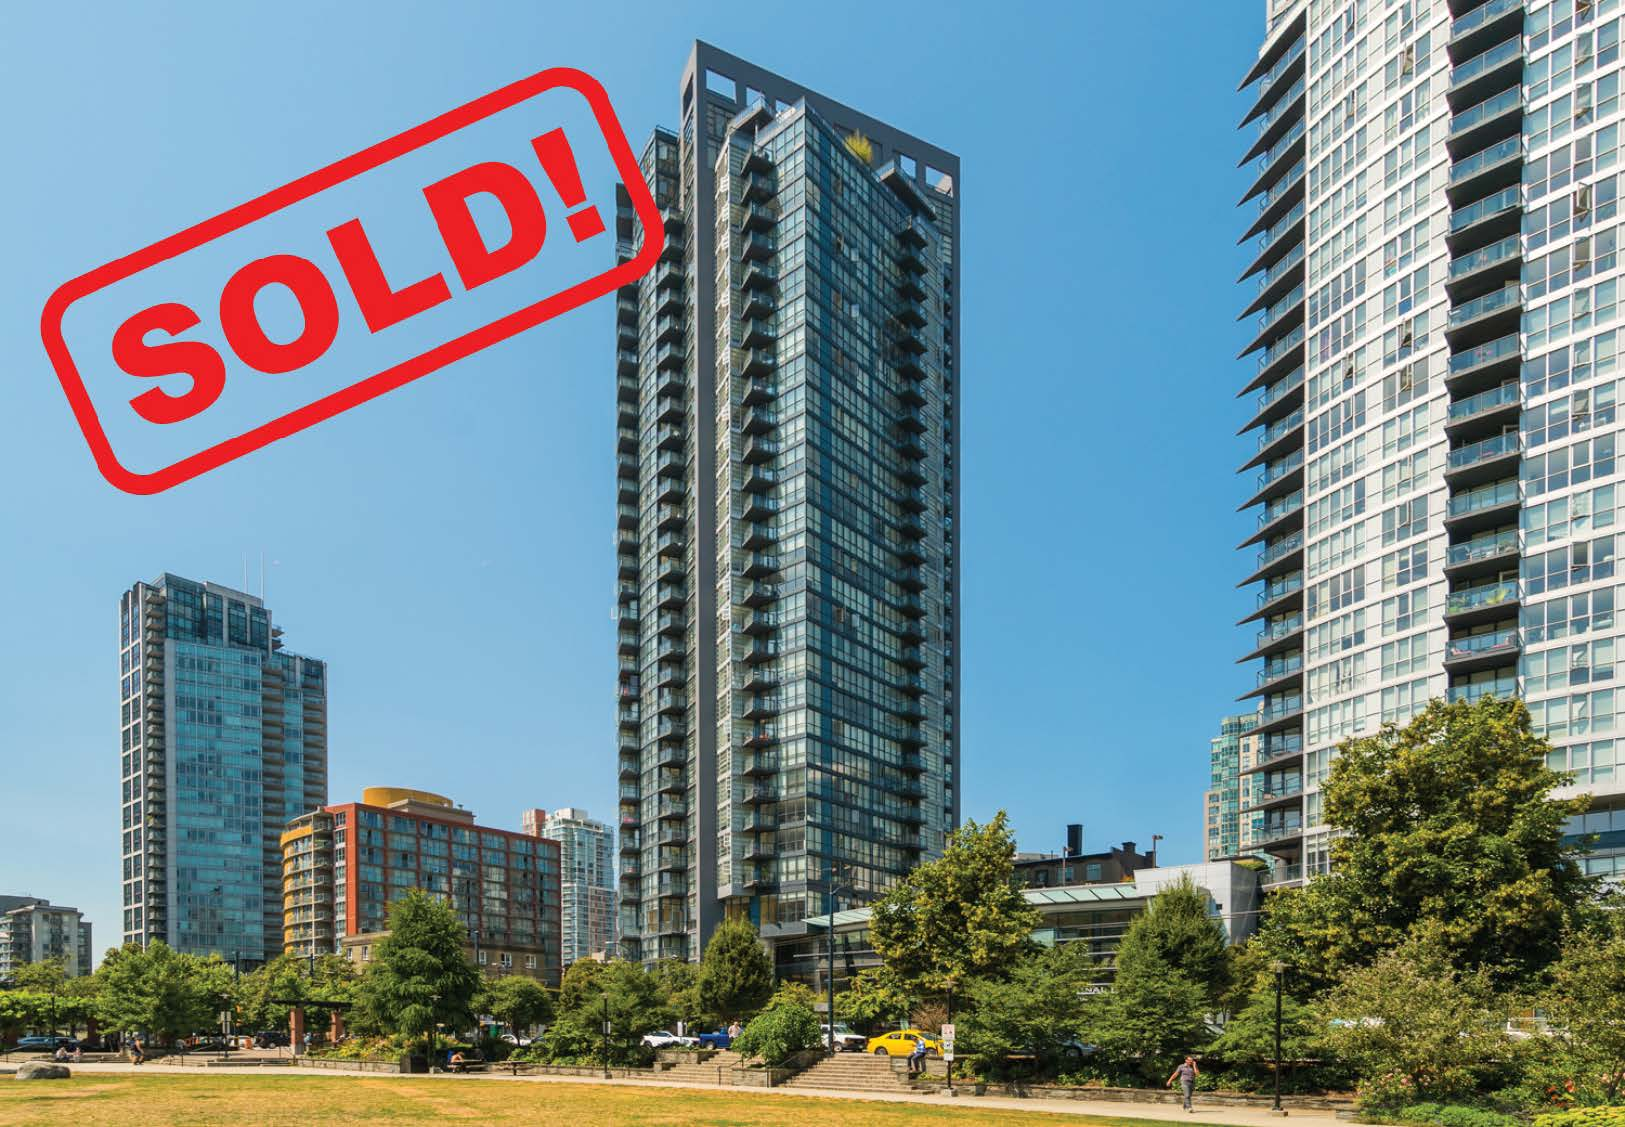 808-1199 Seymour Street   sold for: $651,000  1 BED | 1 BATH | 630 SF